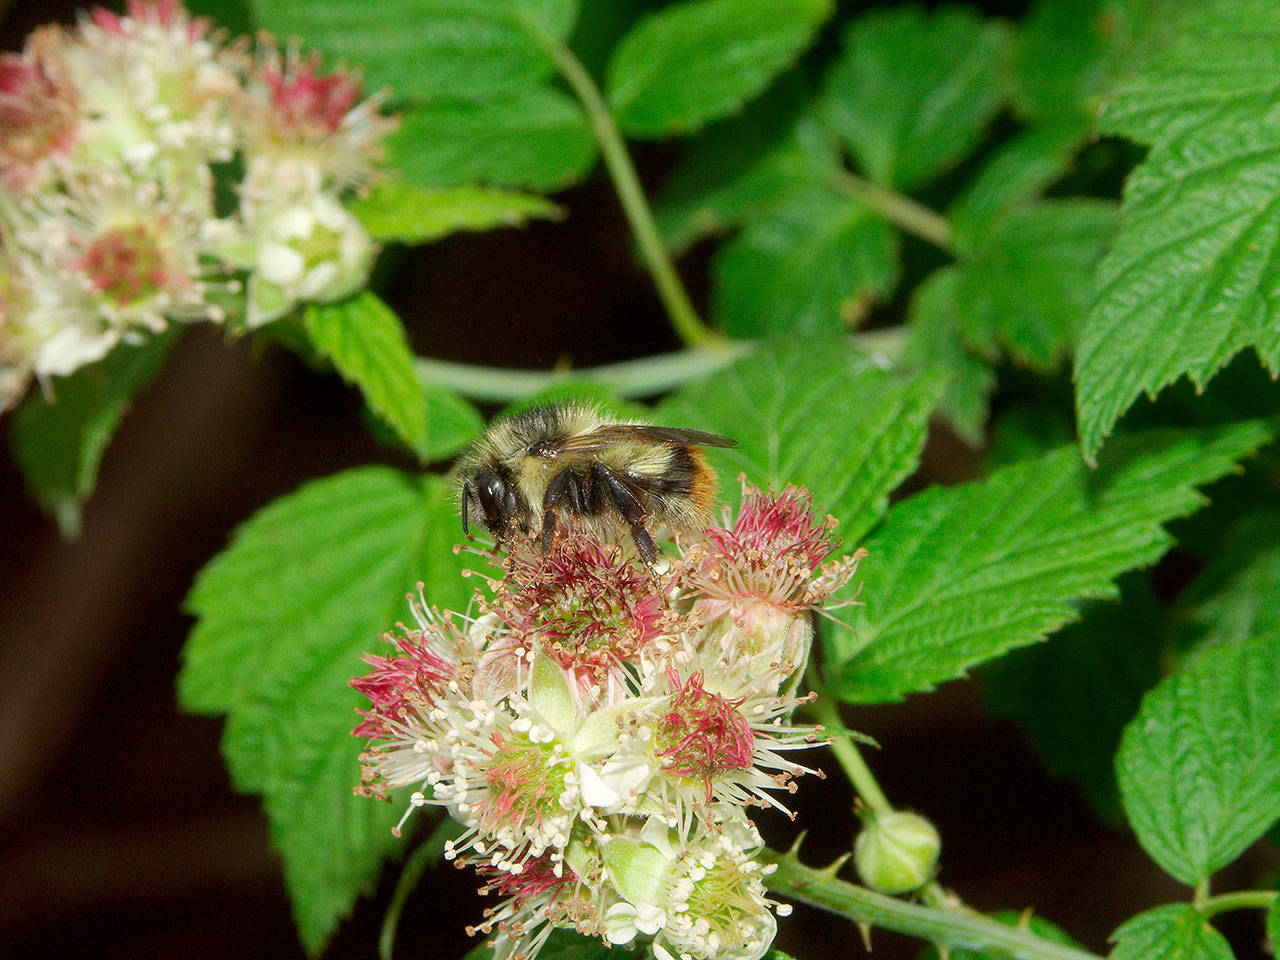 """The Snohomish Conservation District is hosting a """"Landscaping for Wildlife: Creating Habitat for Beneficial Animals Insects"""" webinar Feb. 20 via Zoom. (Mace Vaughan)"""